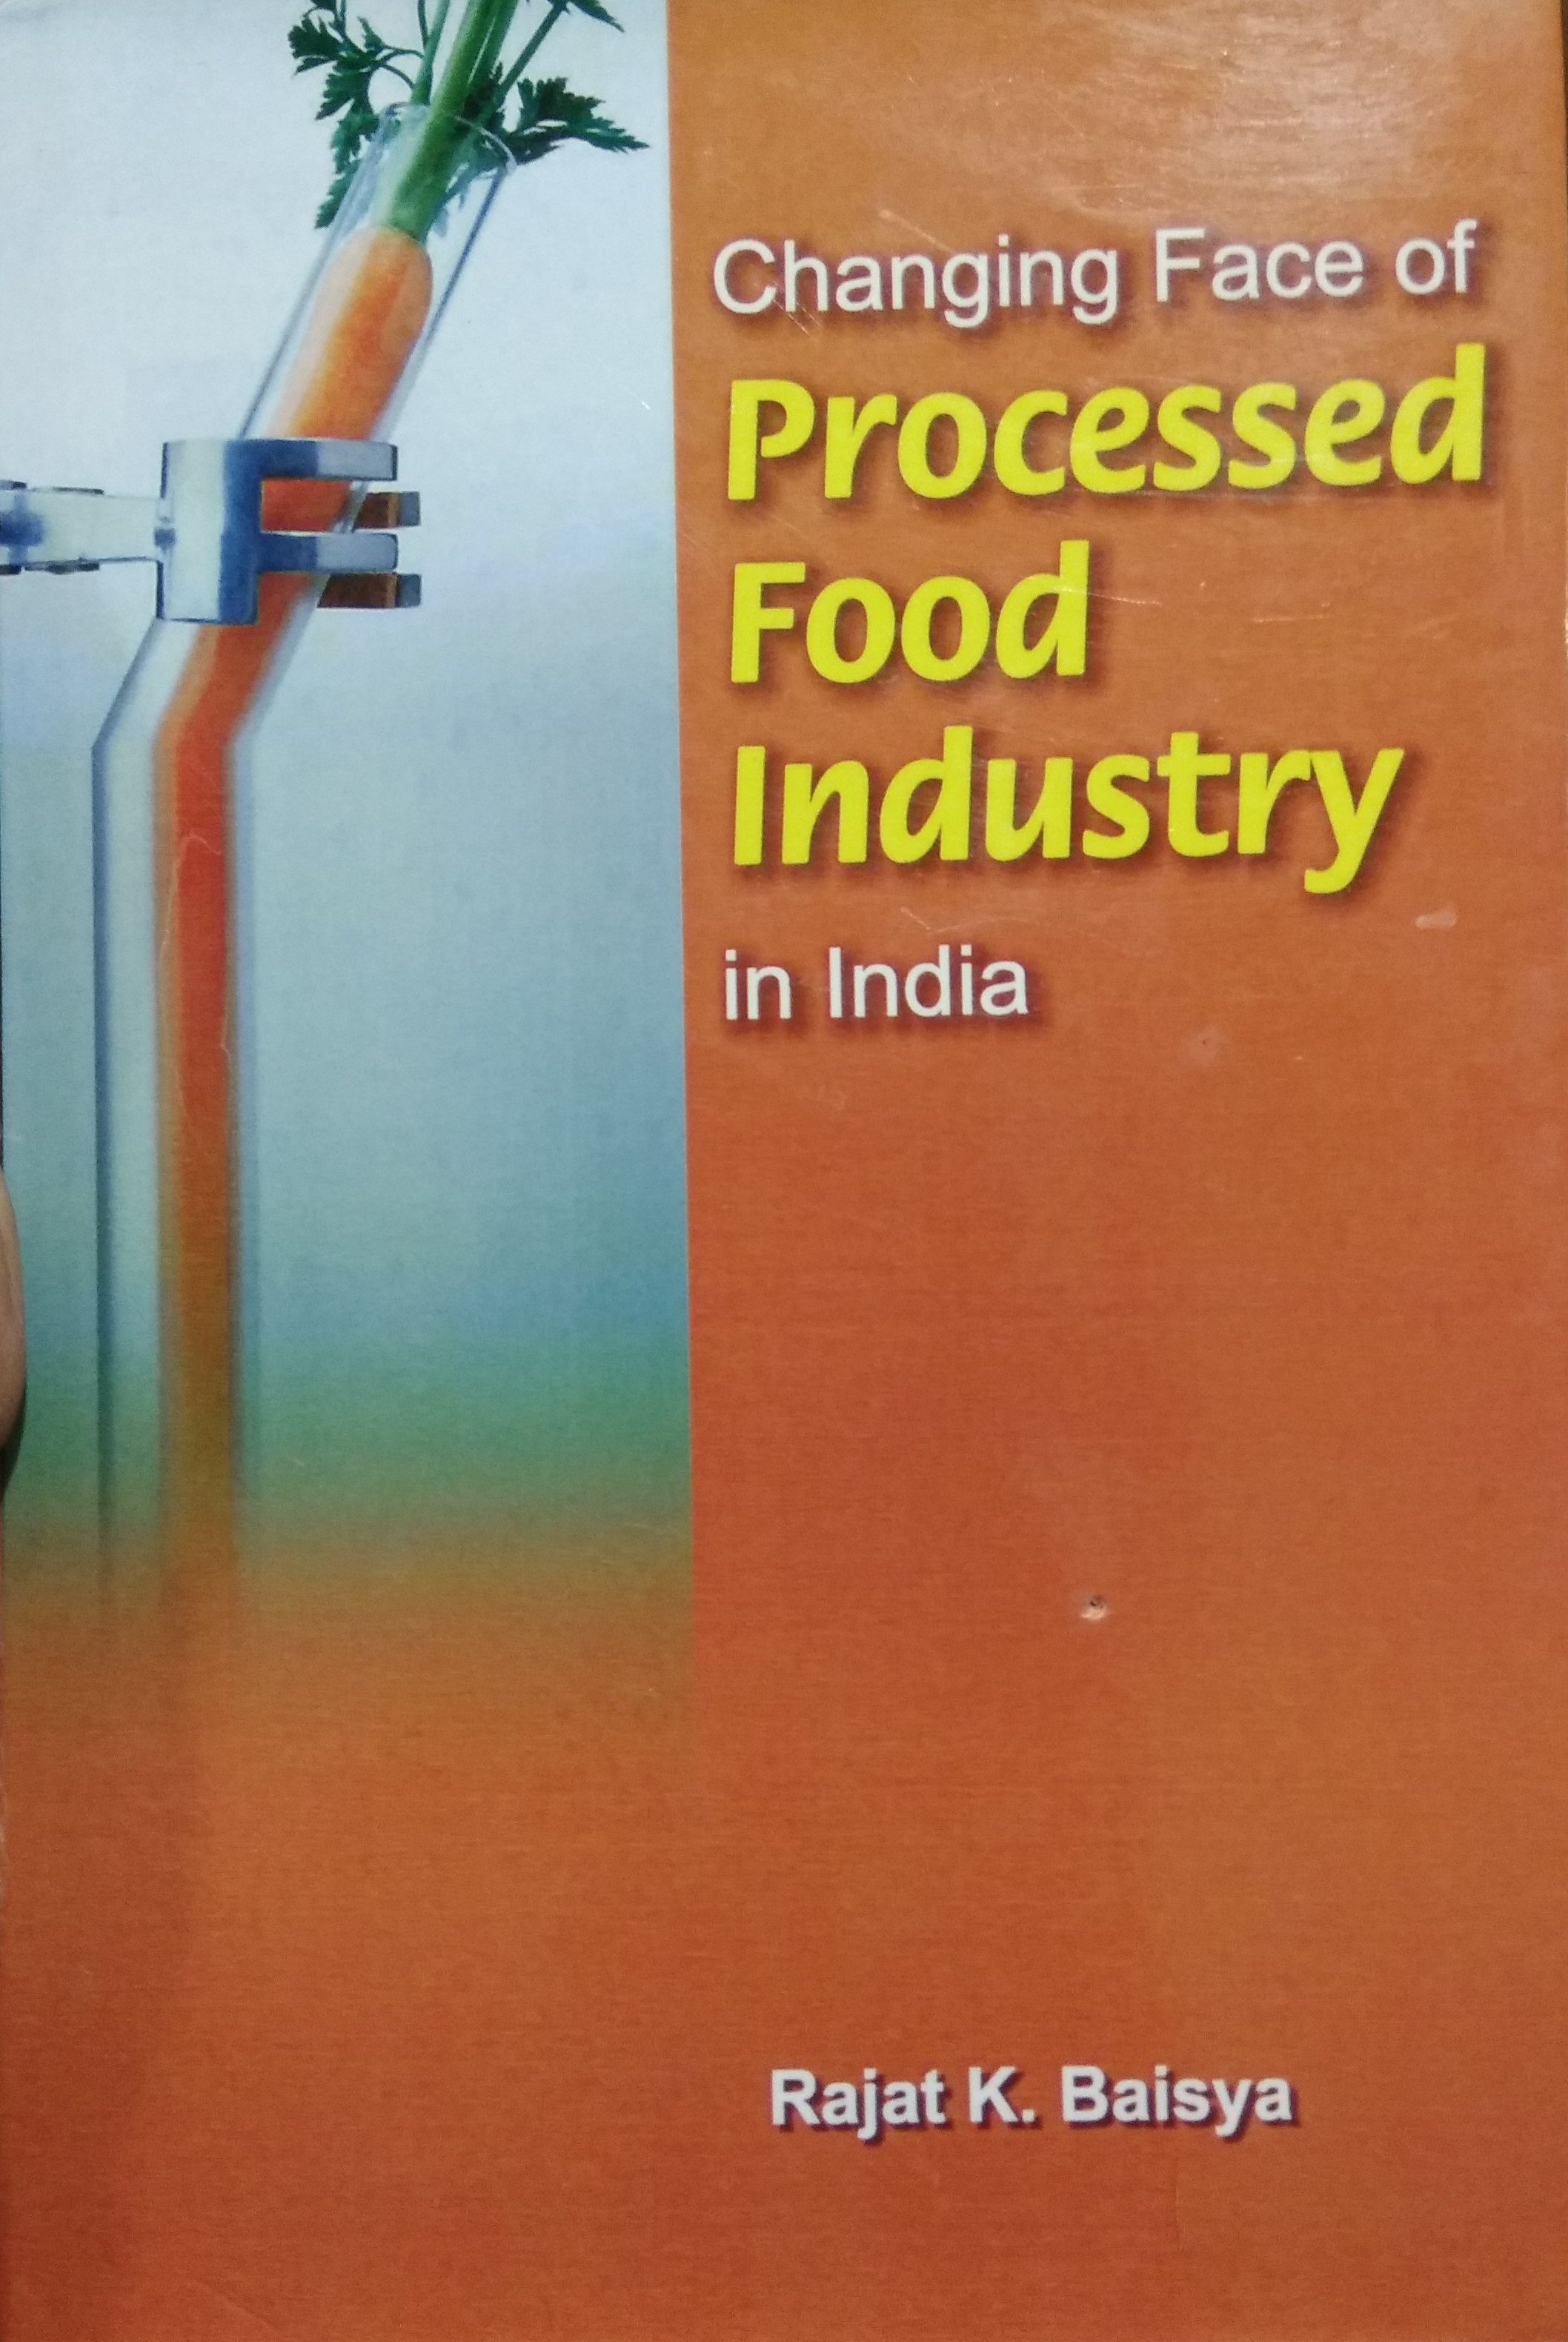 Changing Face of Processed Food Industry in India